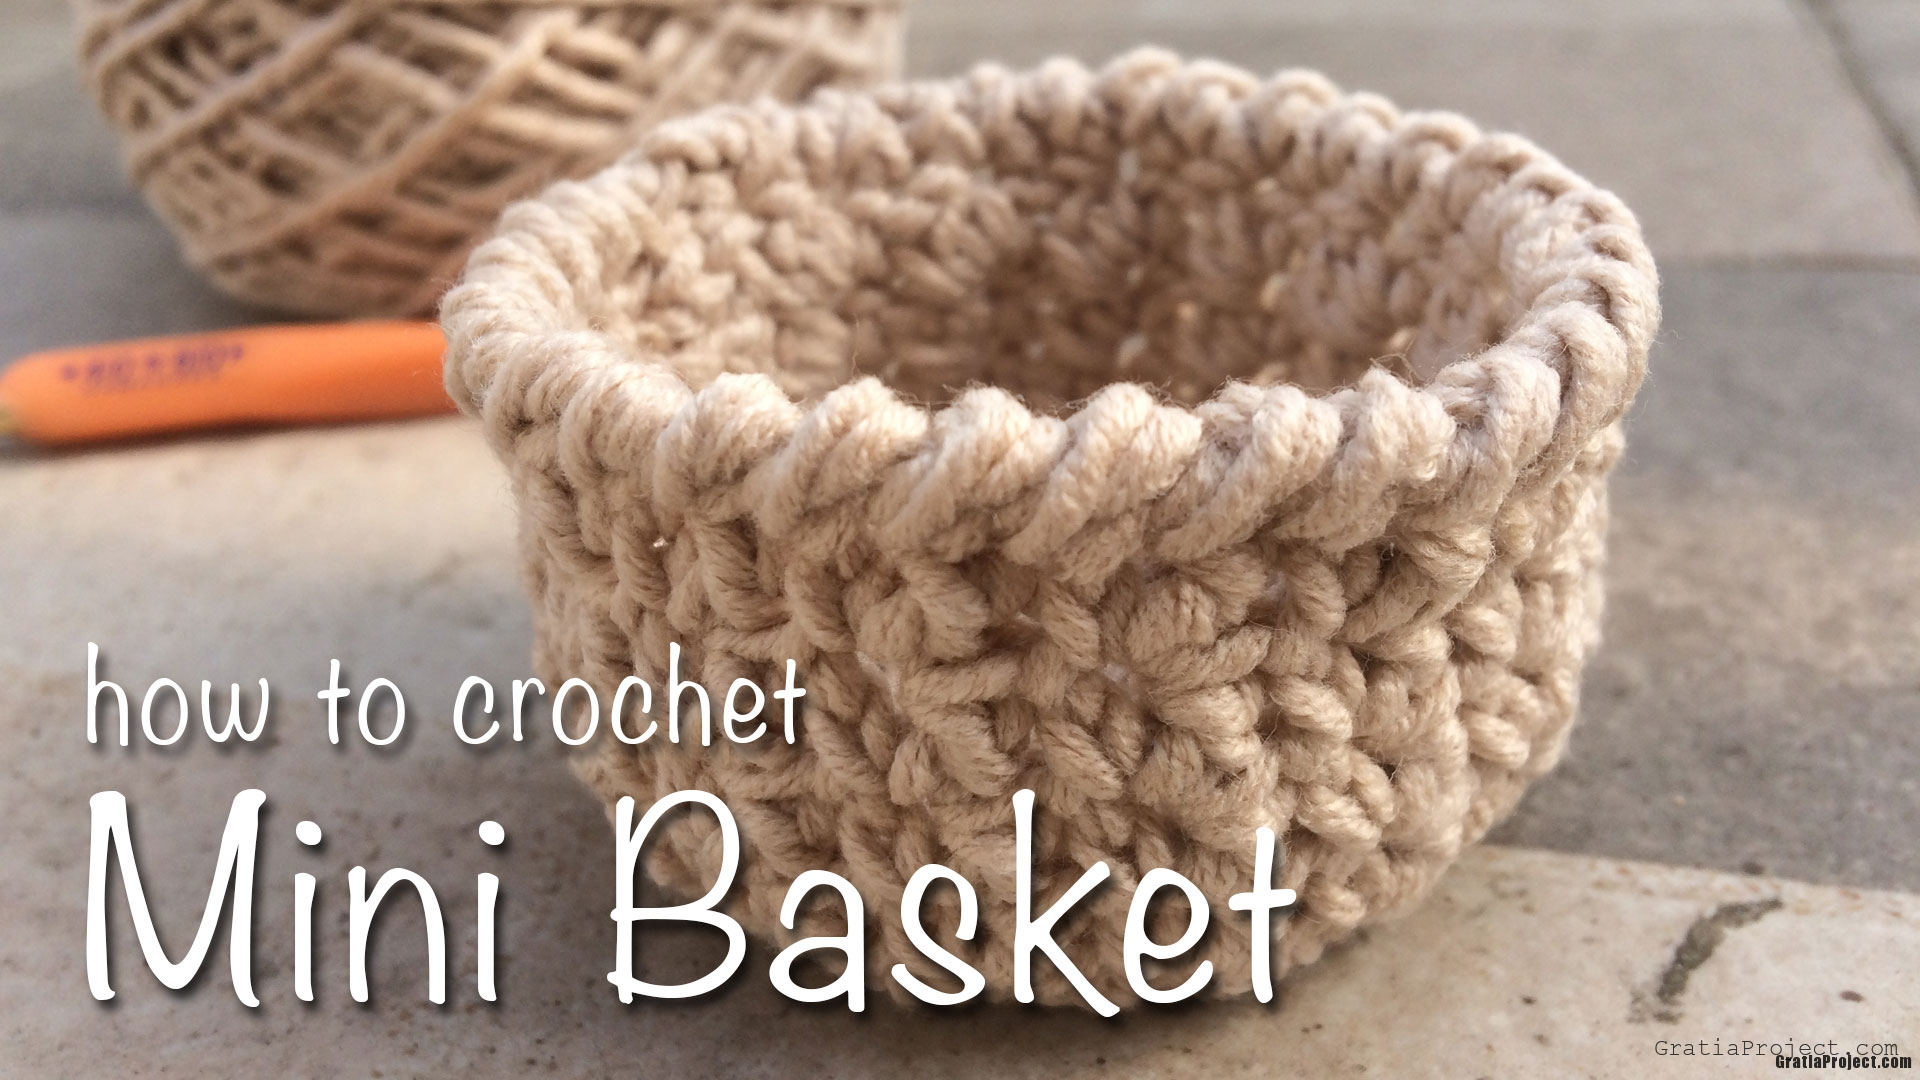 mini-basket-crochet-tutorial